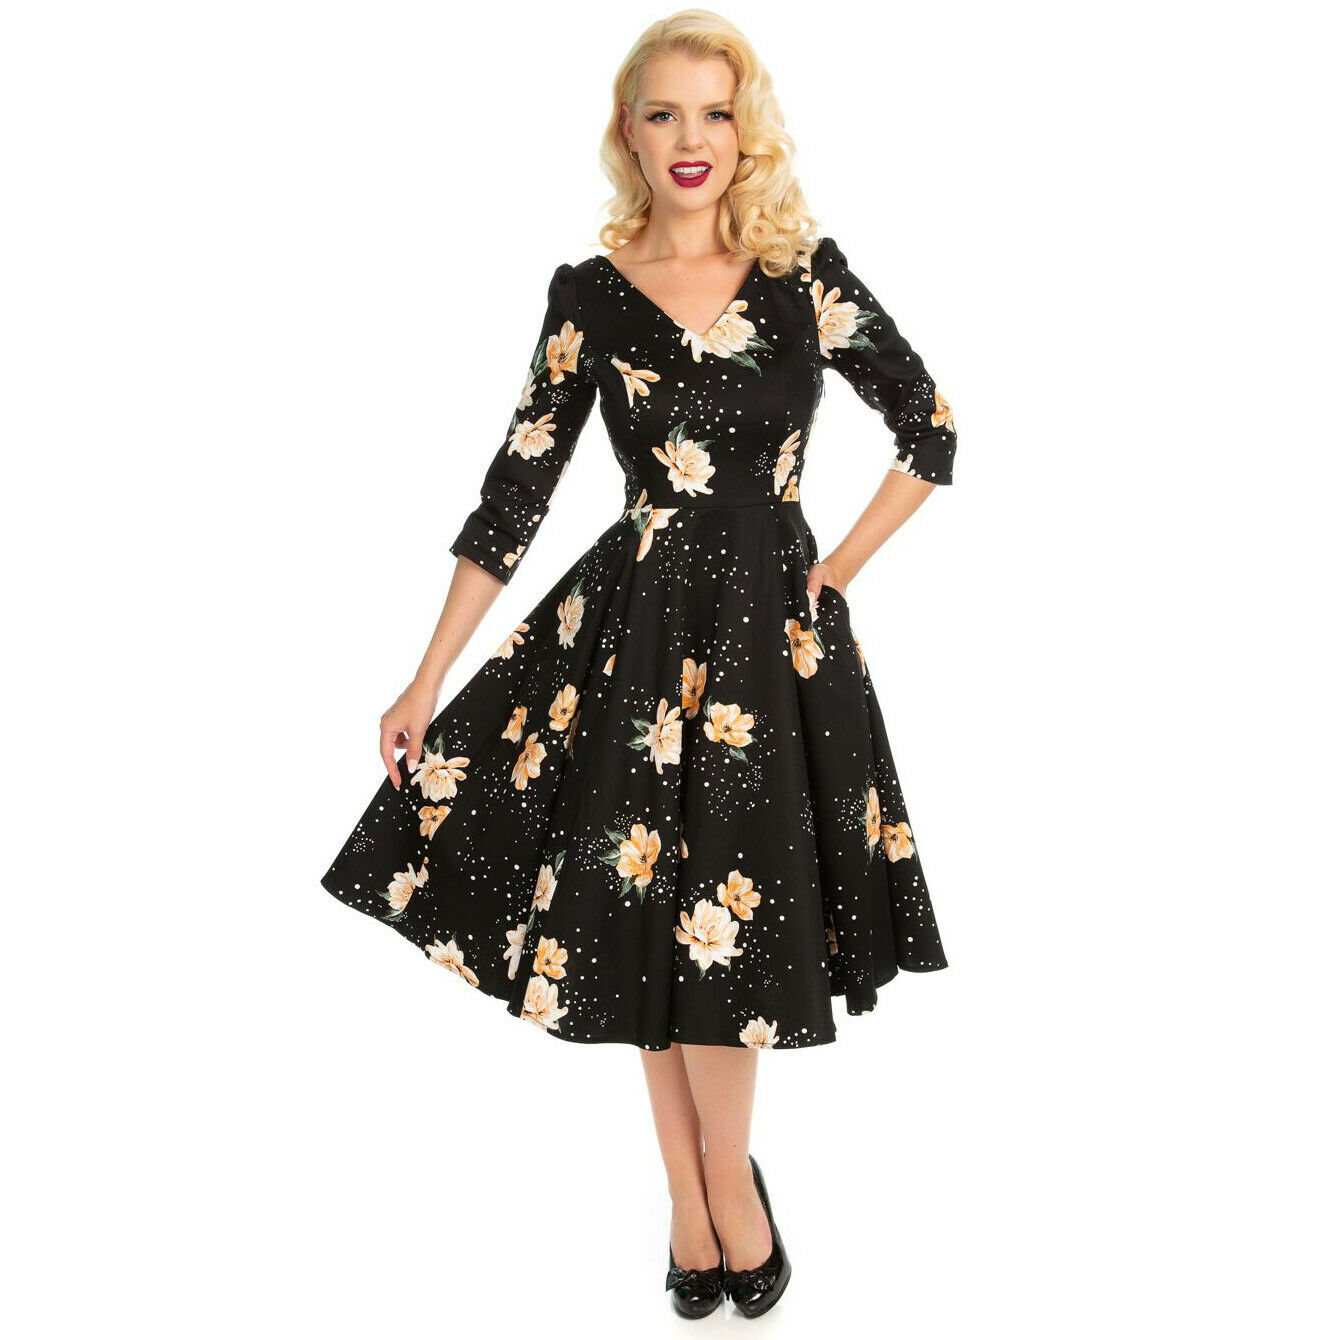 Stunning Black Floral Stardust 3 4 Sleeve Vintage Swing Party Occasion Dress